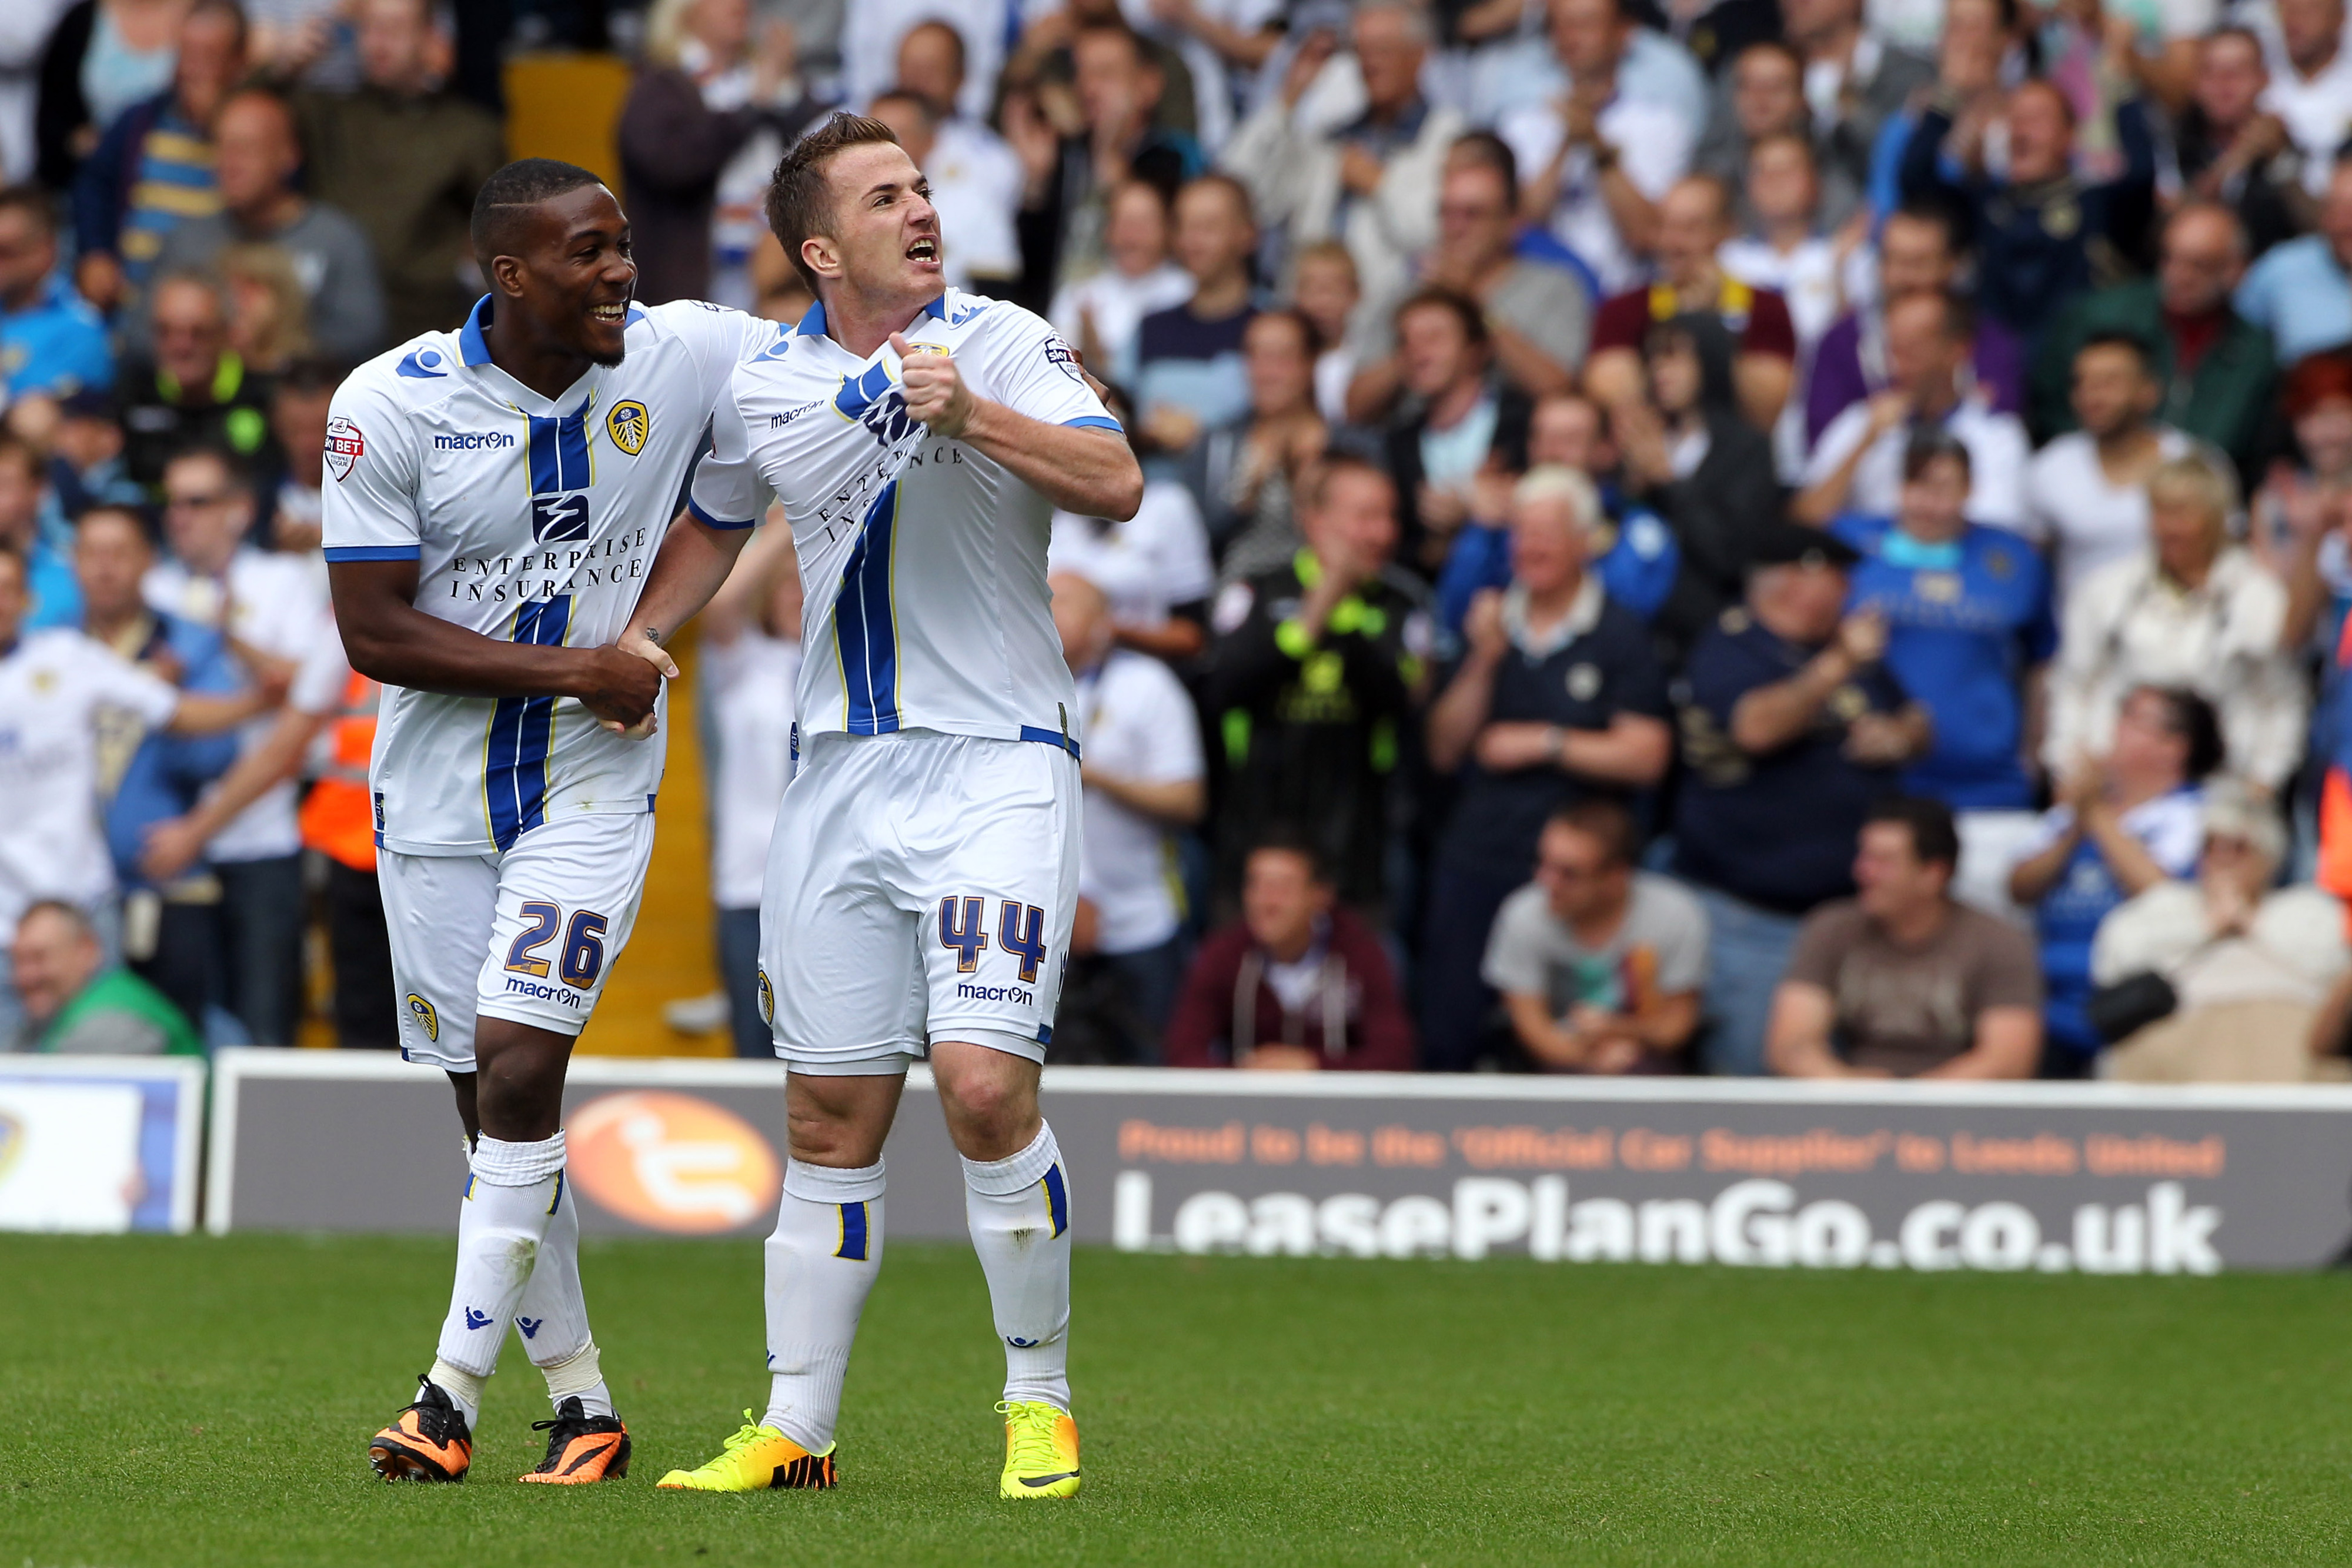 Do GFH want the shirt of Ross McCormack's back?